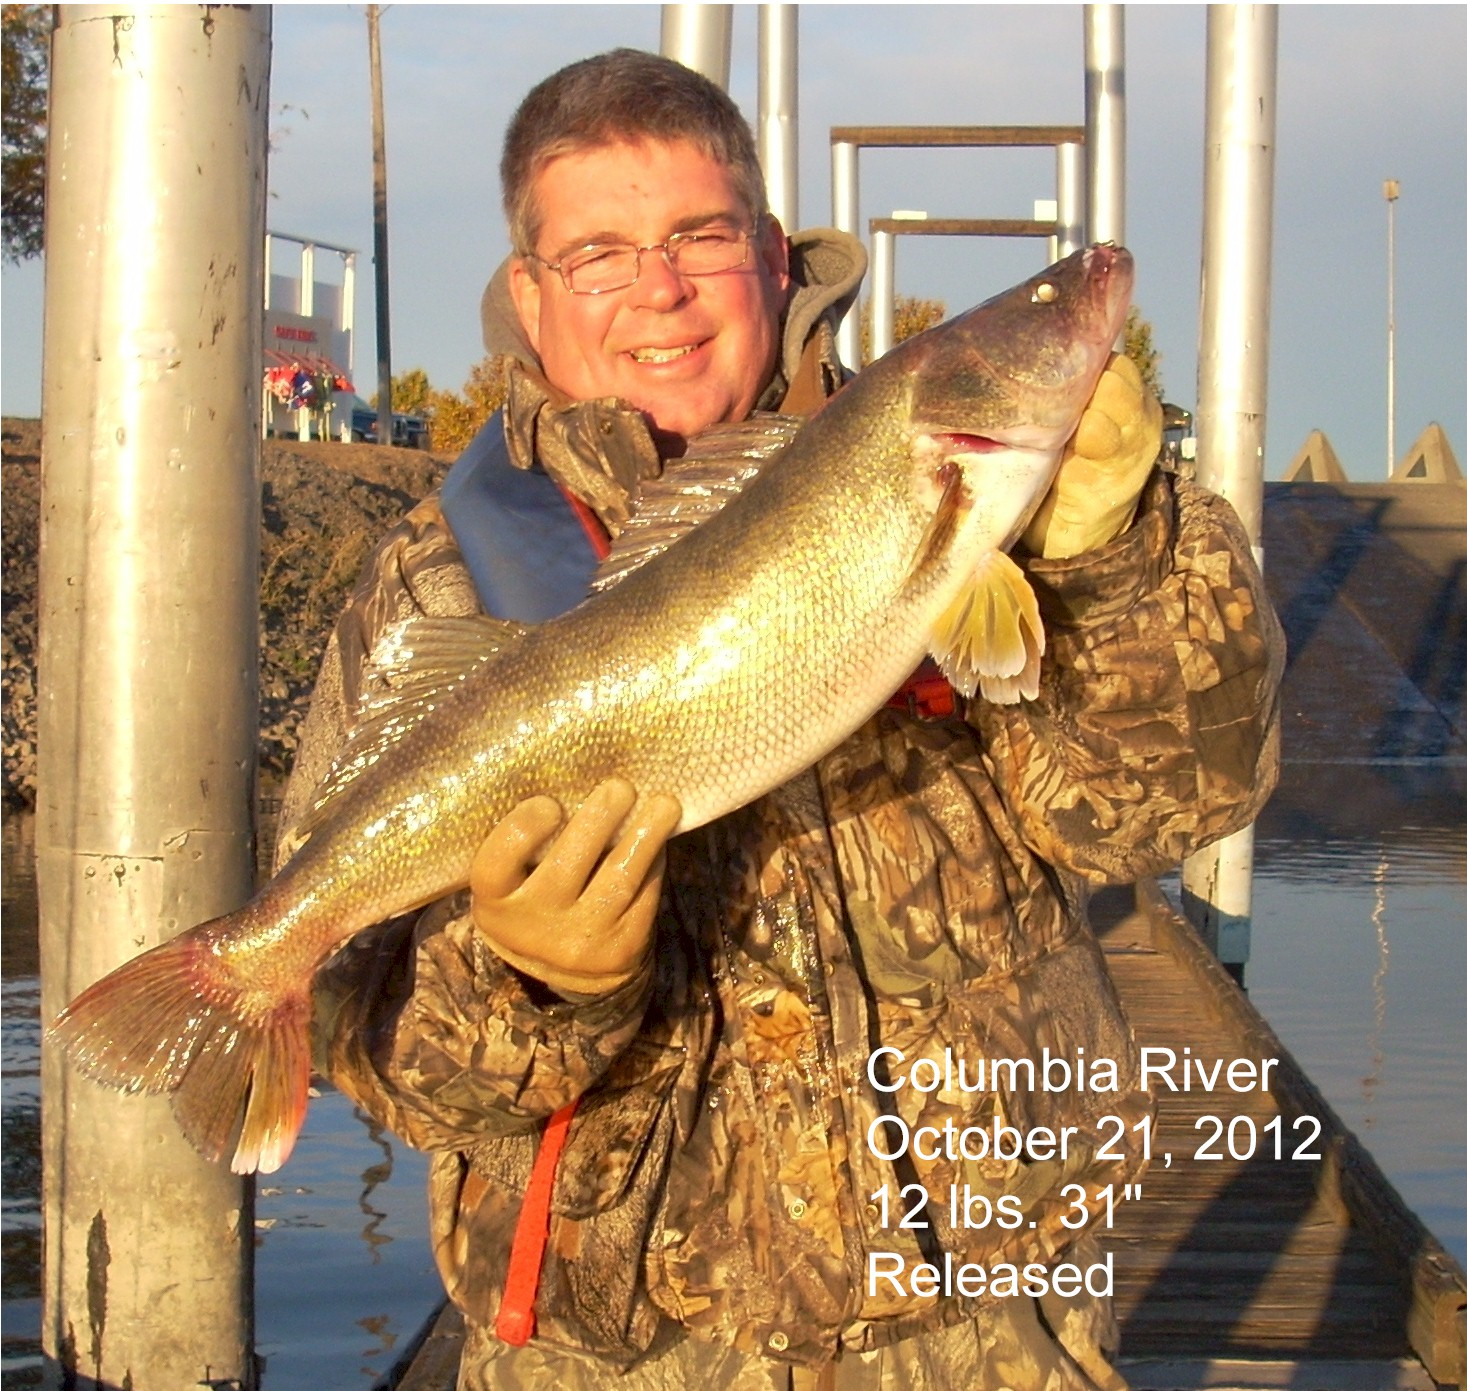 Dan Tuinstra West Linn Oregon    Species: Walleye Date Caught: 10/21/2012 Kept / Released: